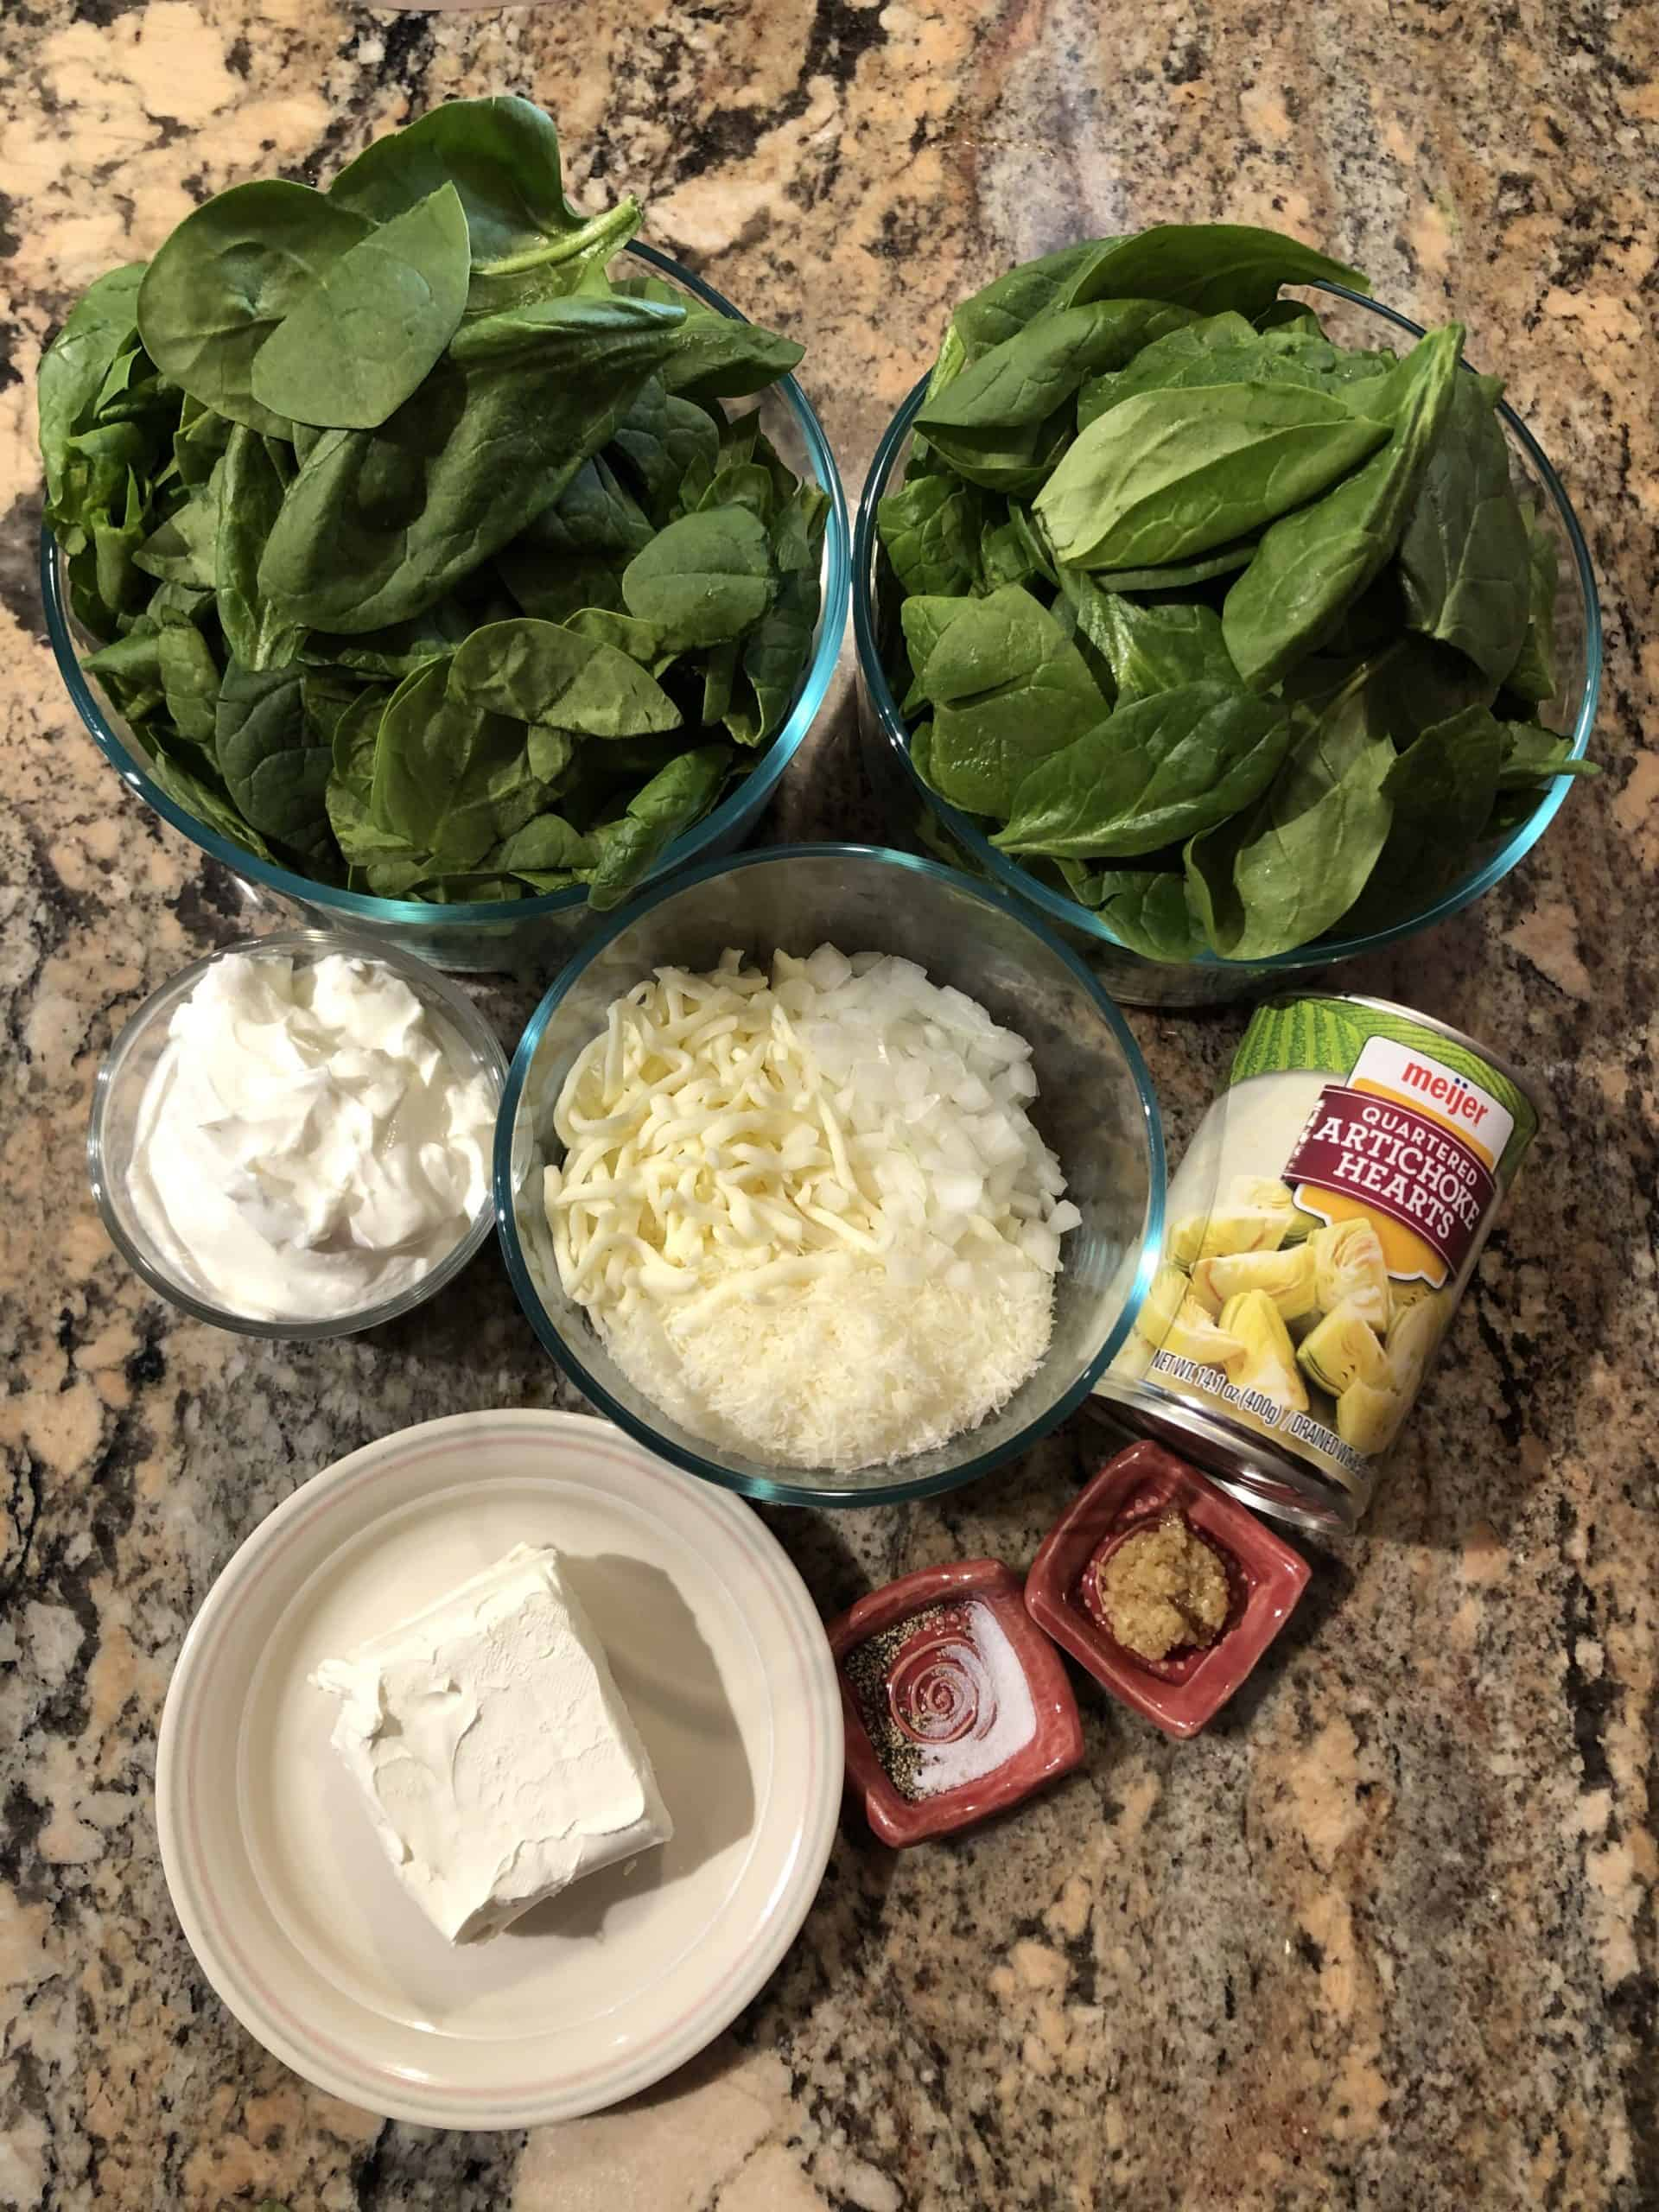 Baked Spinach Artichoke Dip ingredients - fresh spinach, canned artichoke hearts, 3 kinds of cheeses, sour cream and seasonings.